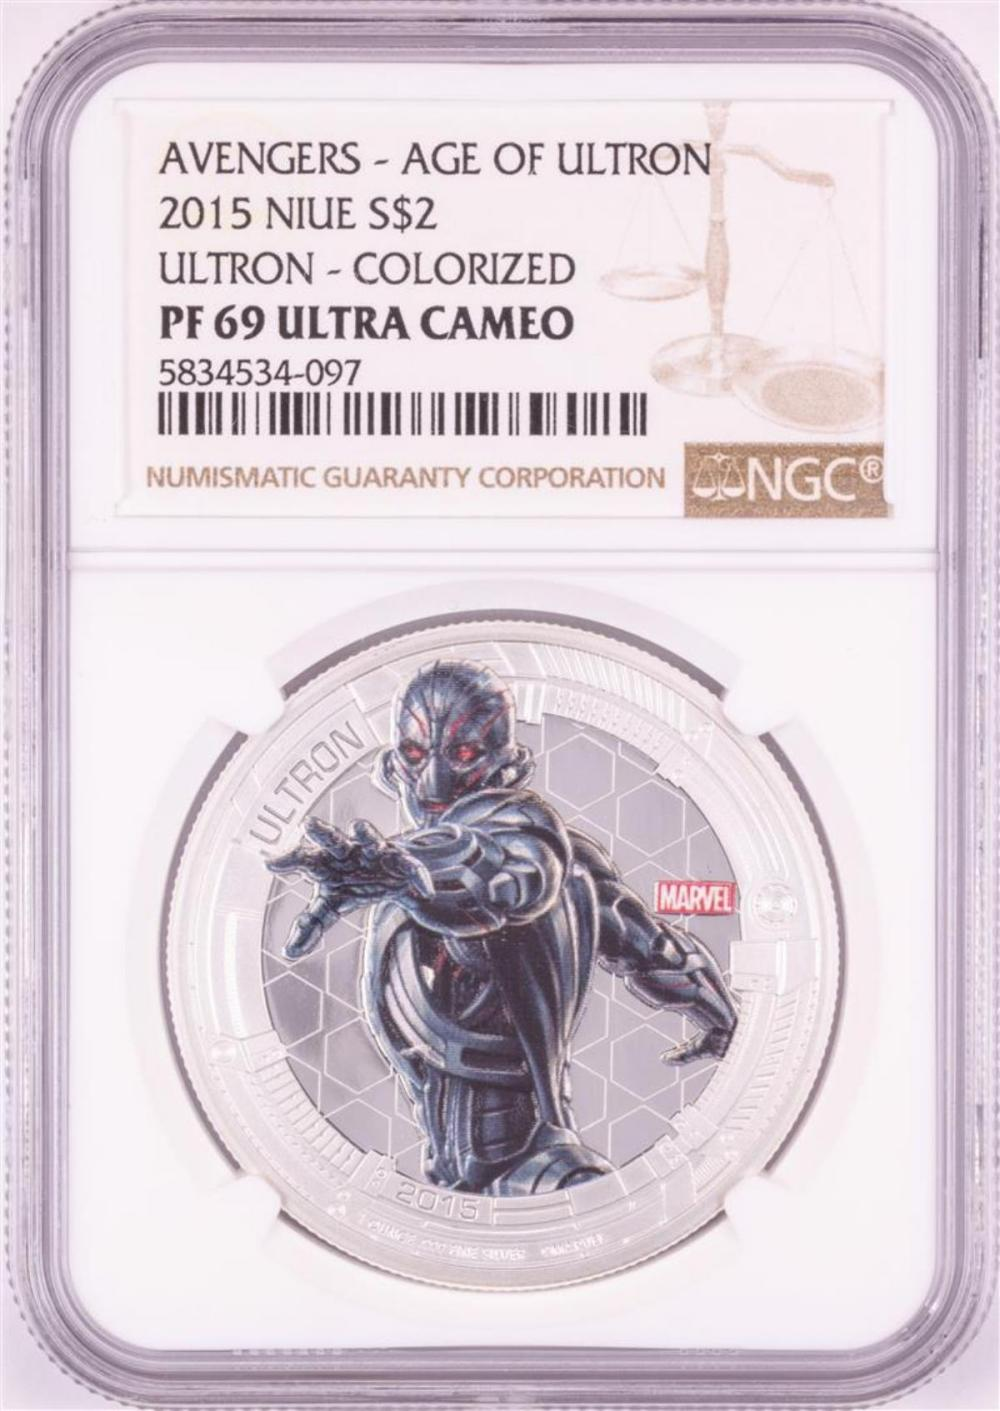 2015 Niue $2 Proof Avengers Age of Ultron Silver Coin NGC PF69 Ultra Cameo